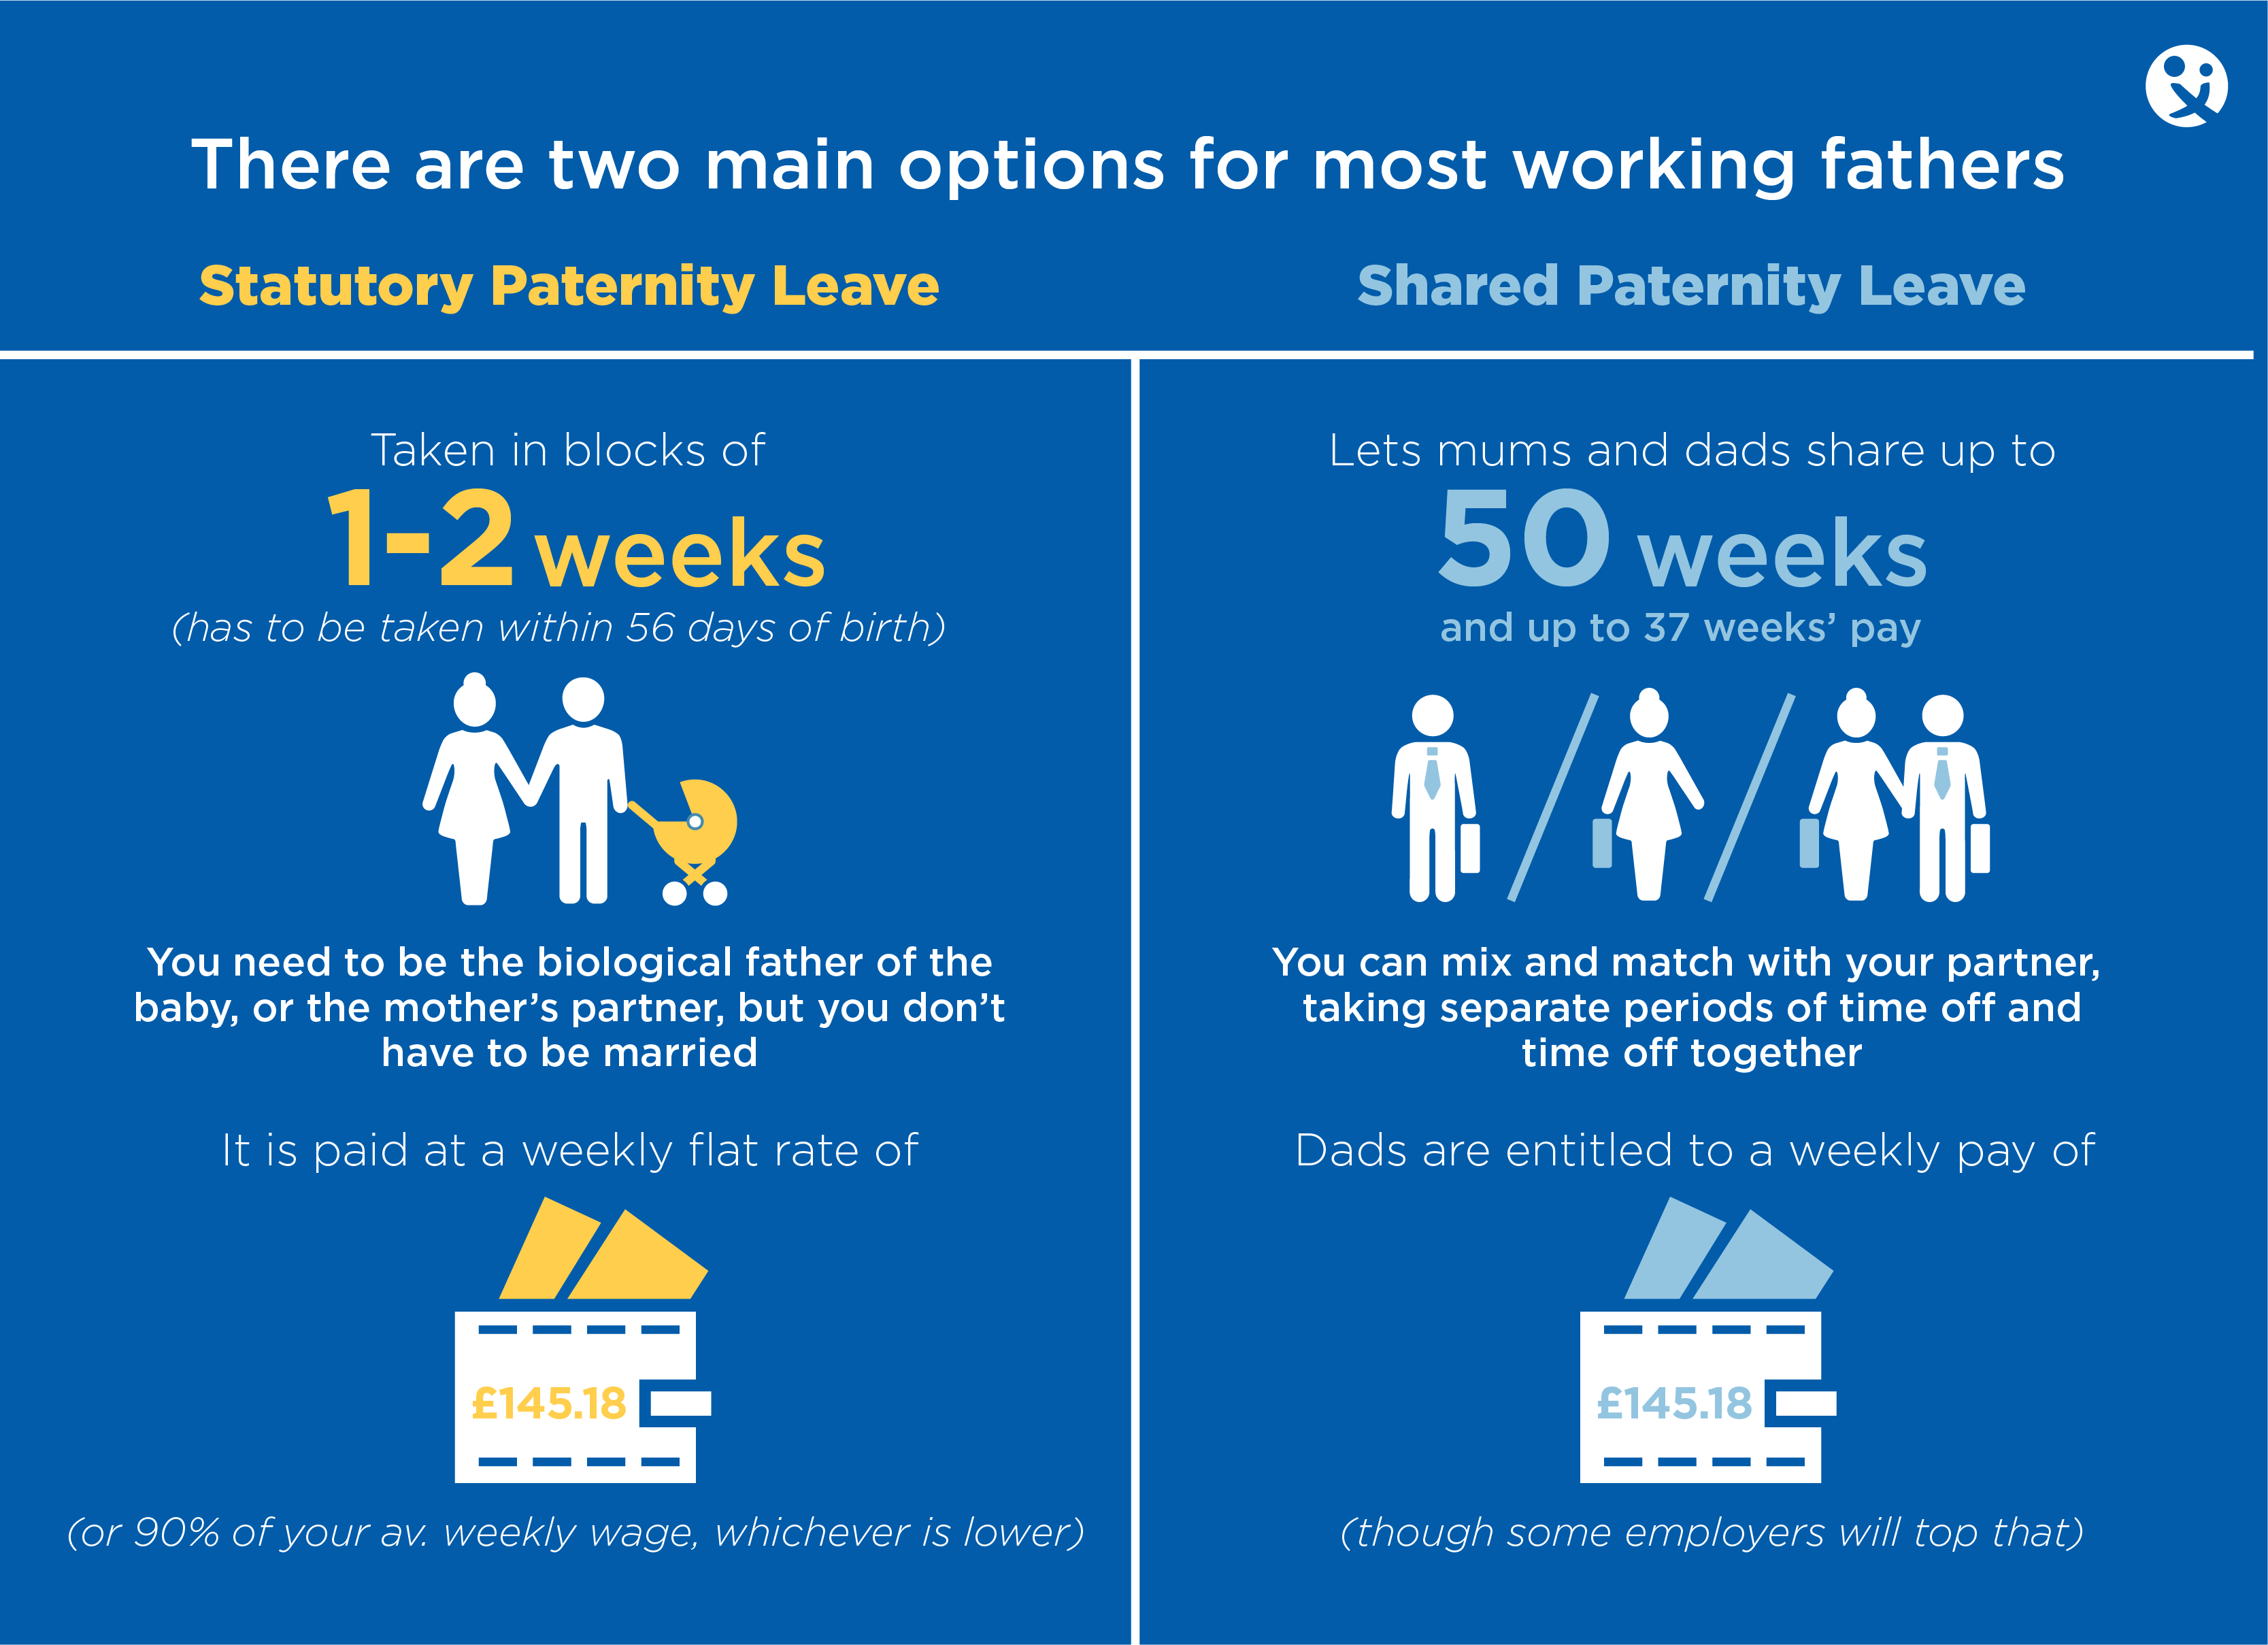 paternity leave options,dads at work, daddilife